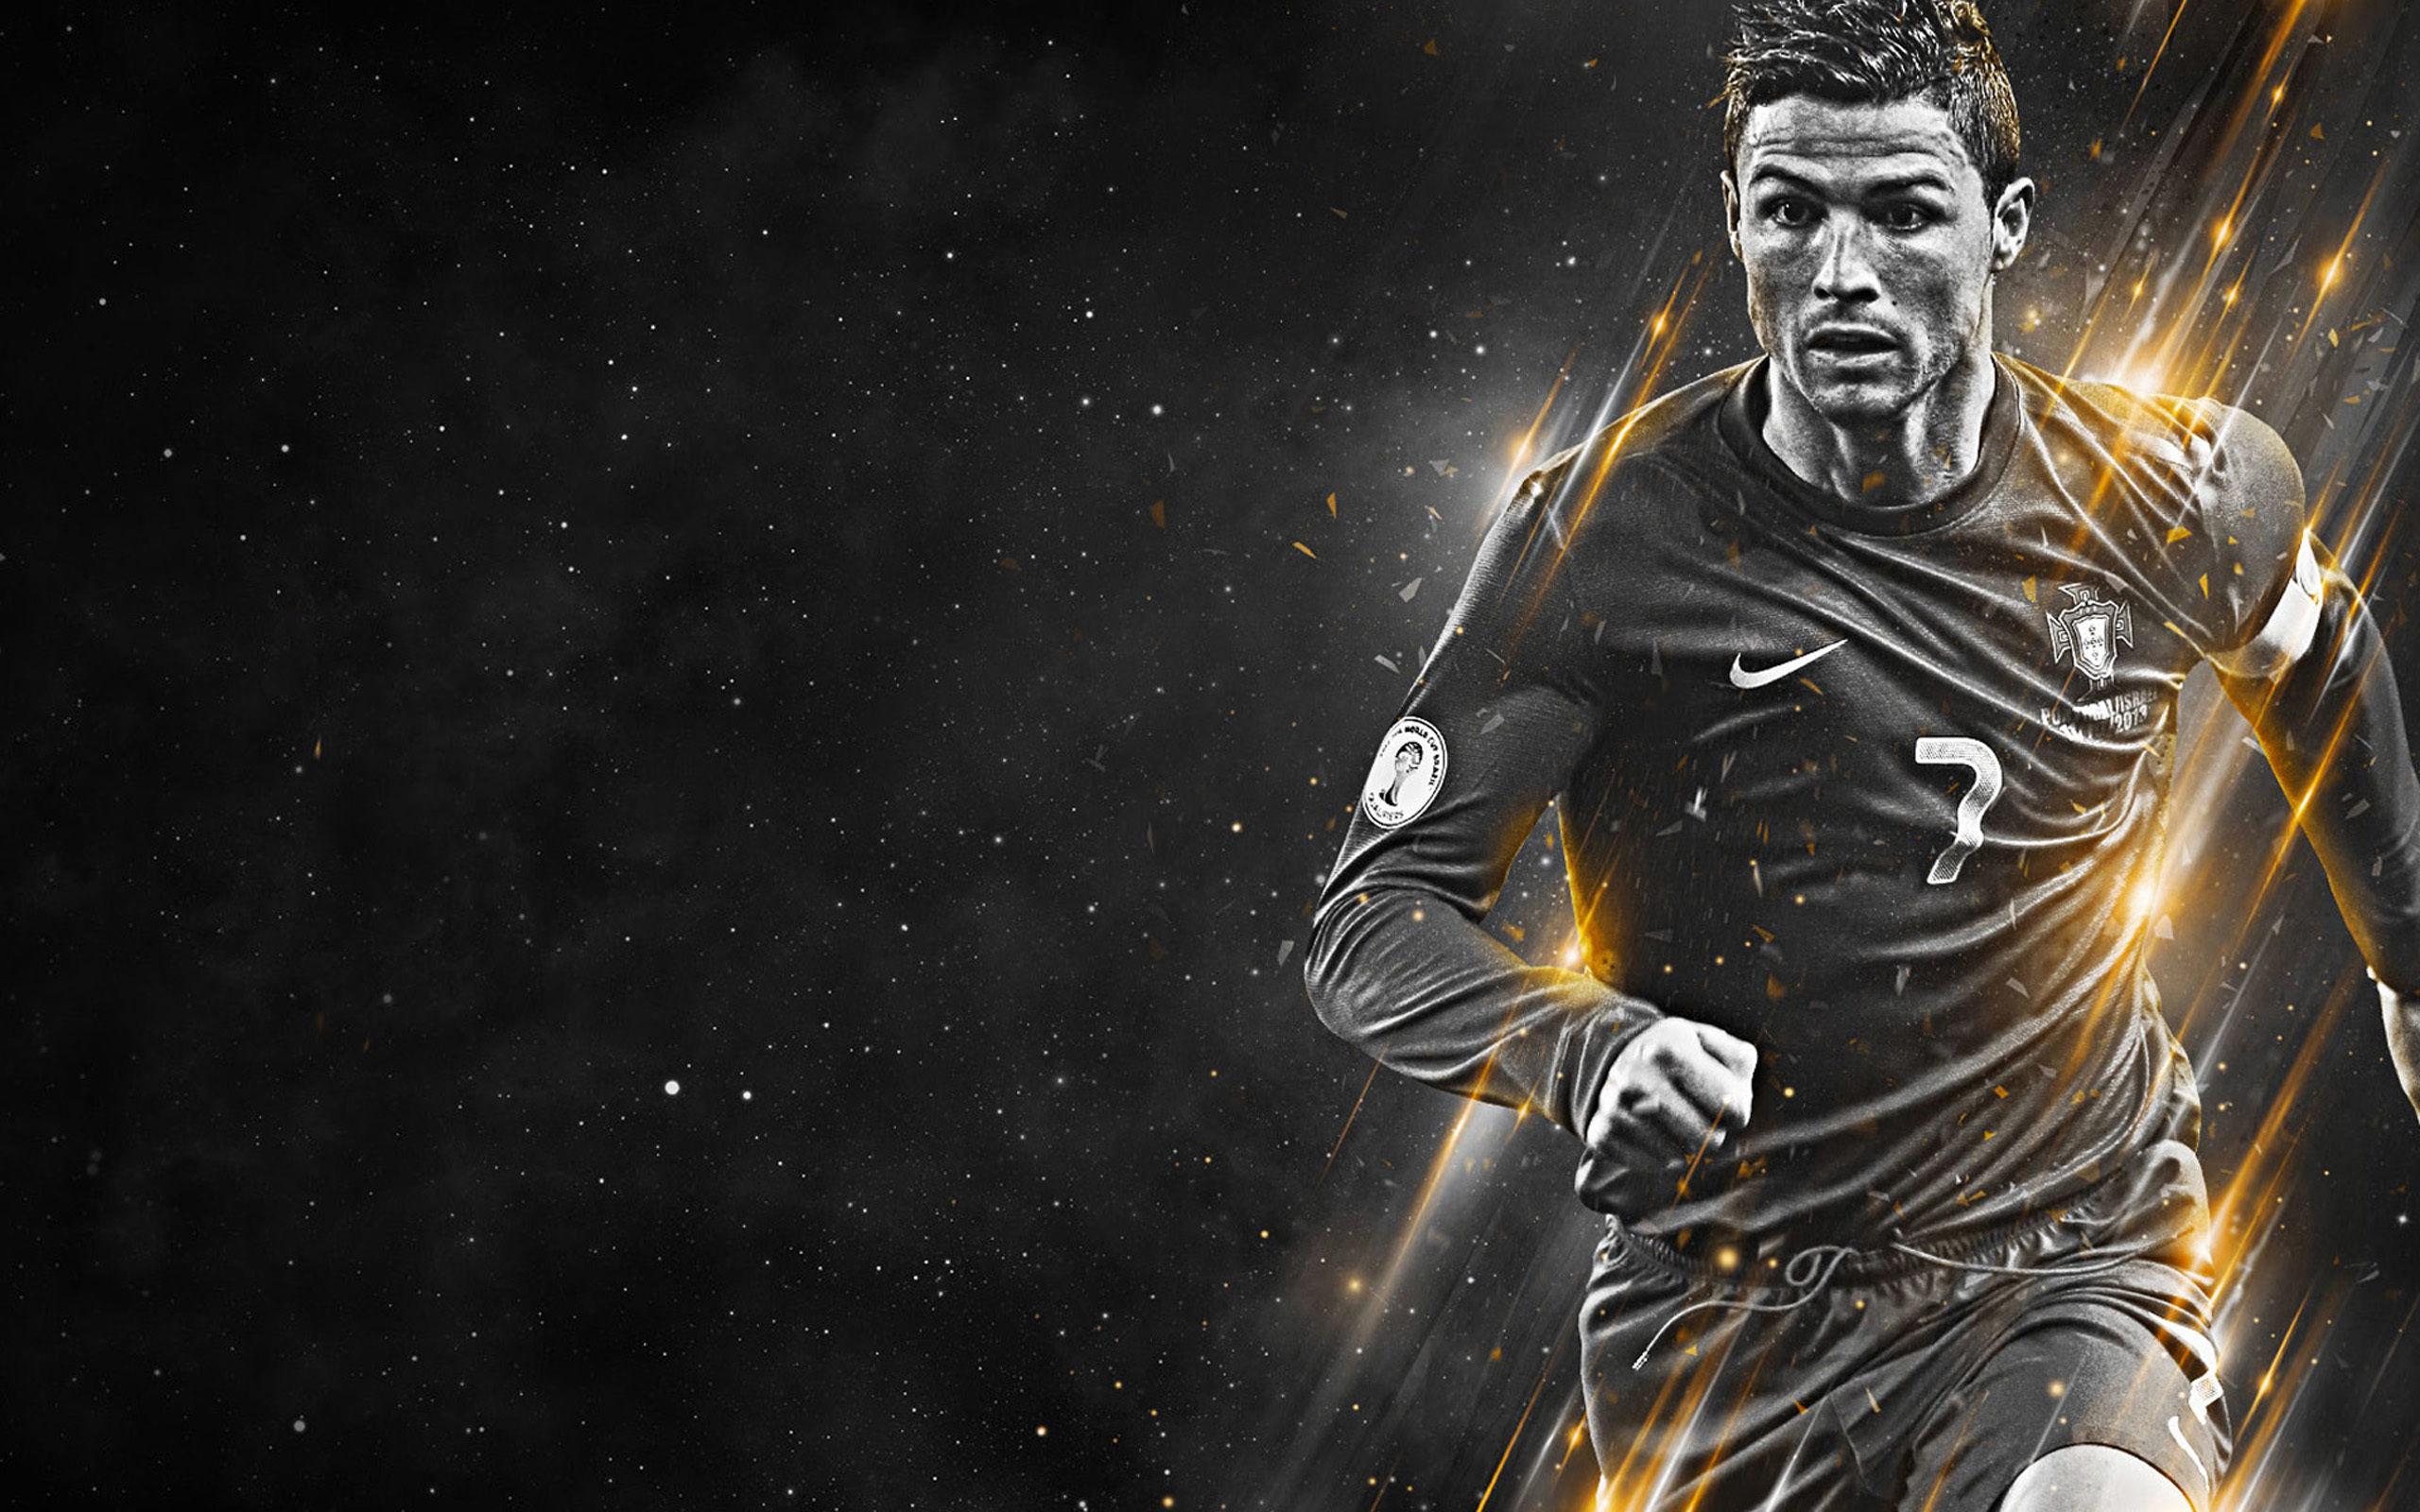 Wallpaper Of Ronaldo